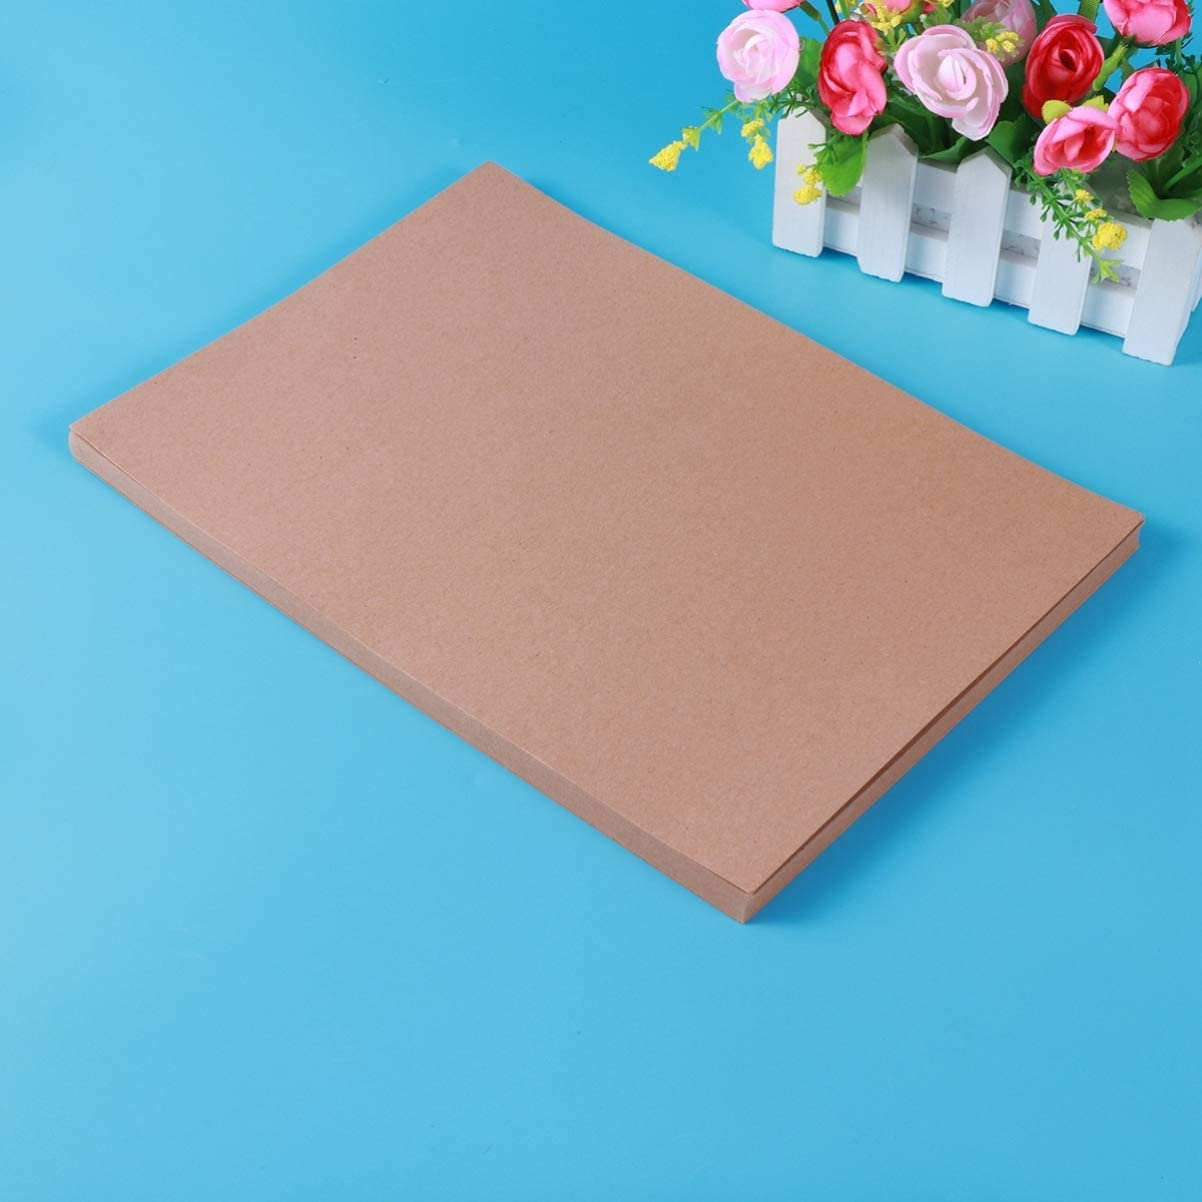 Healifty 50 Sheets Brown Kraft Paper A4 Flower Bouquet Sleeves DIY Gift Wrapping Paper Packaging Paper Table Cover for Store Craft Present DIY Wedding Party Decorations